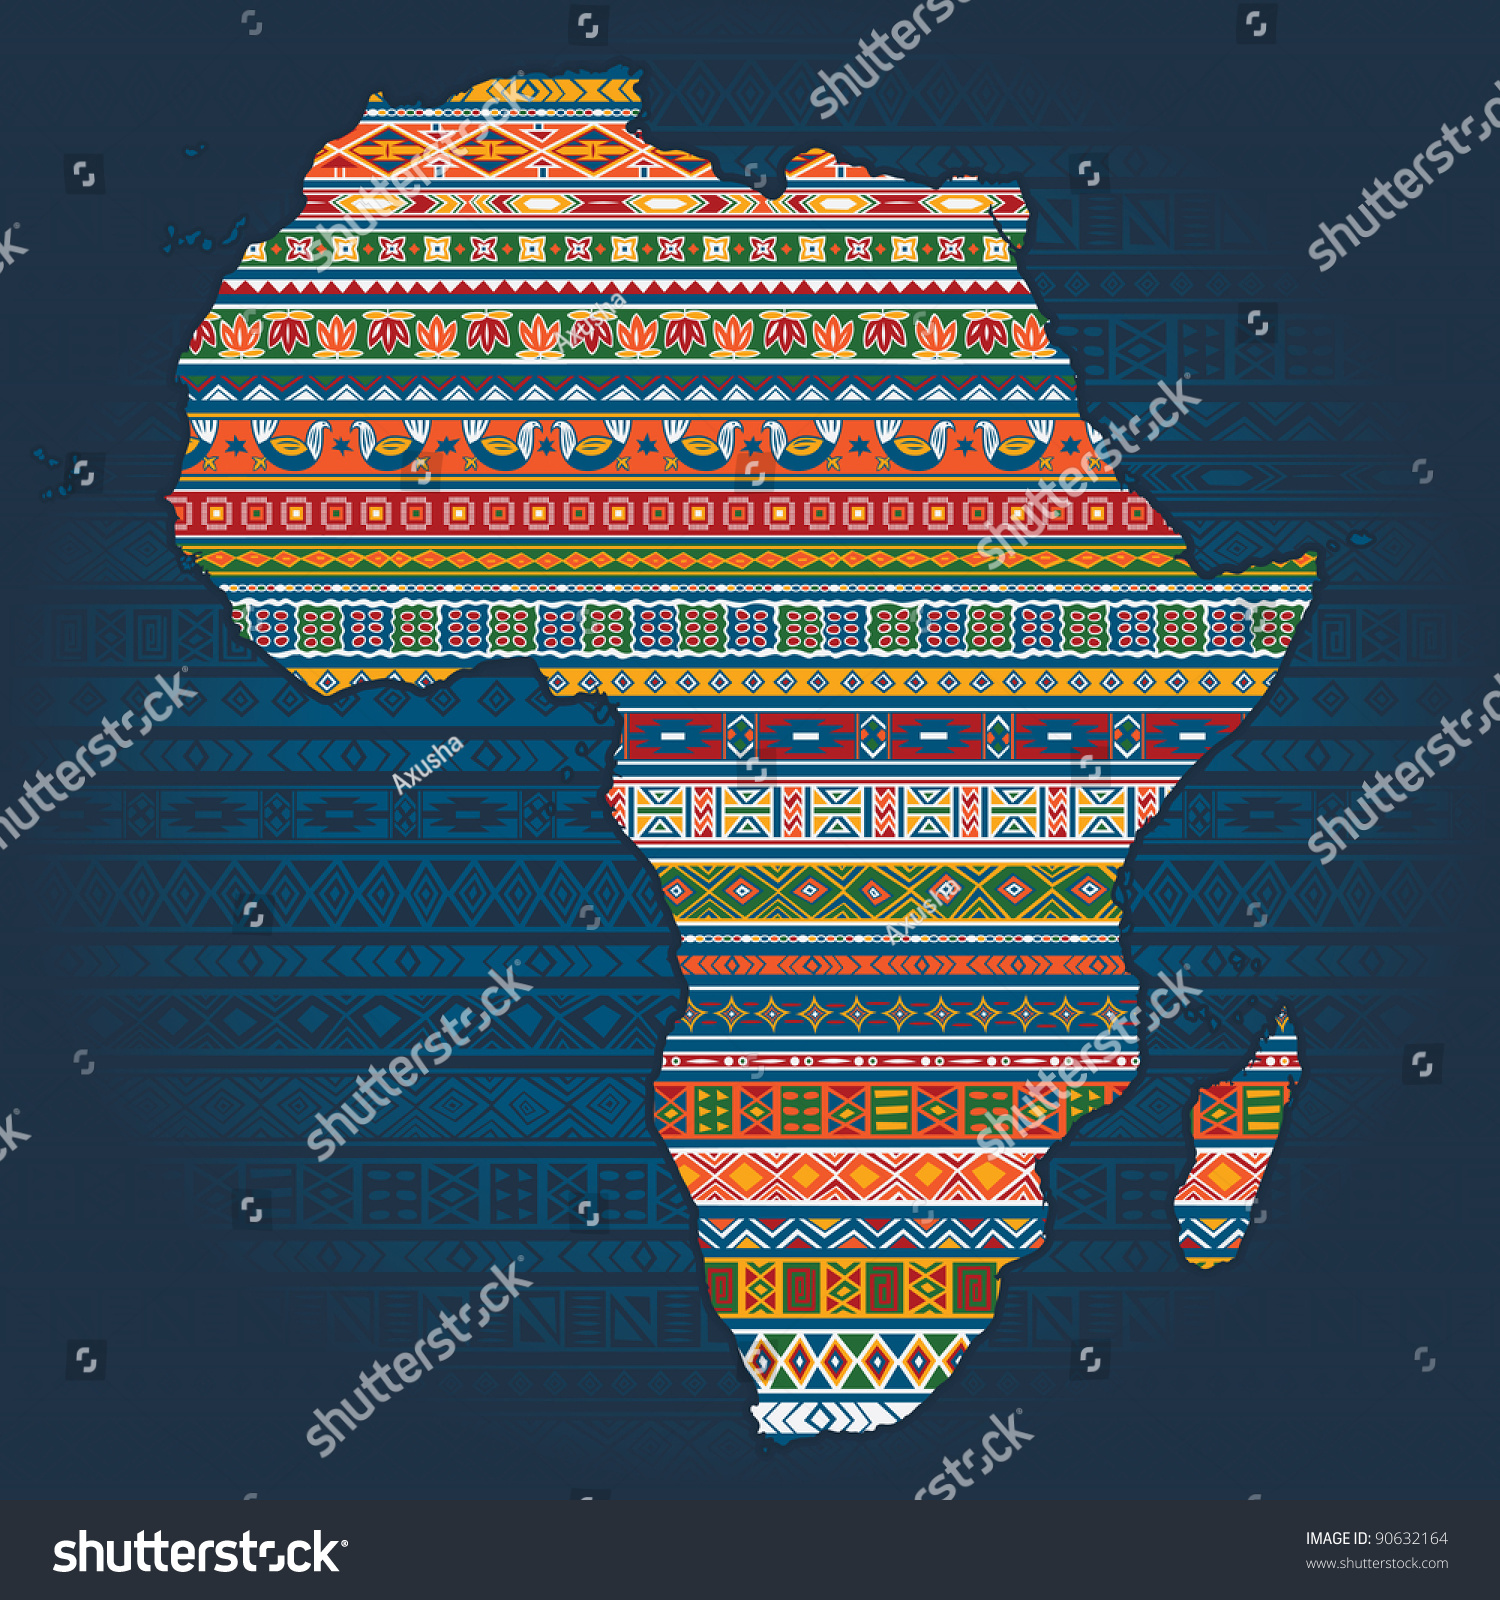 Ethnic National: Contour Of Country With Ethnic African Elements In